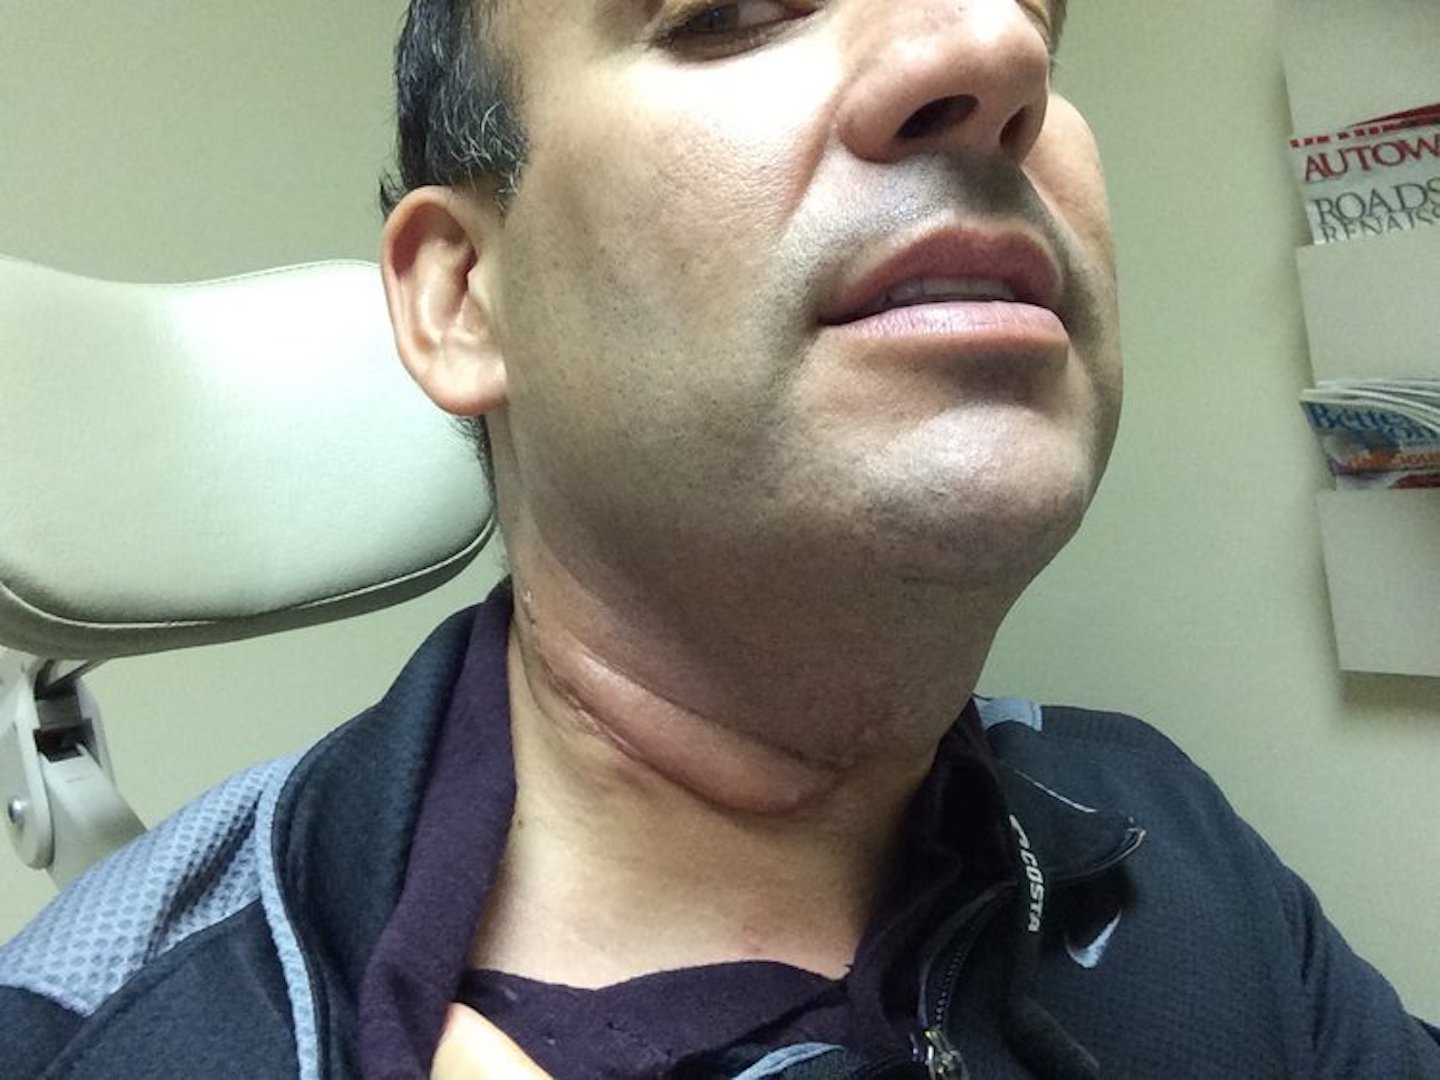 hpv causing neck cancer hpv diagnosis nhs